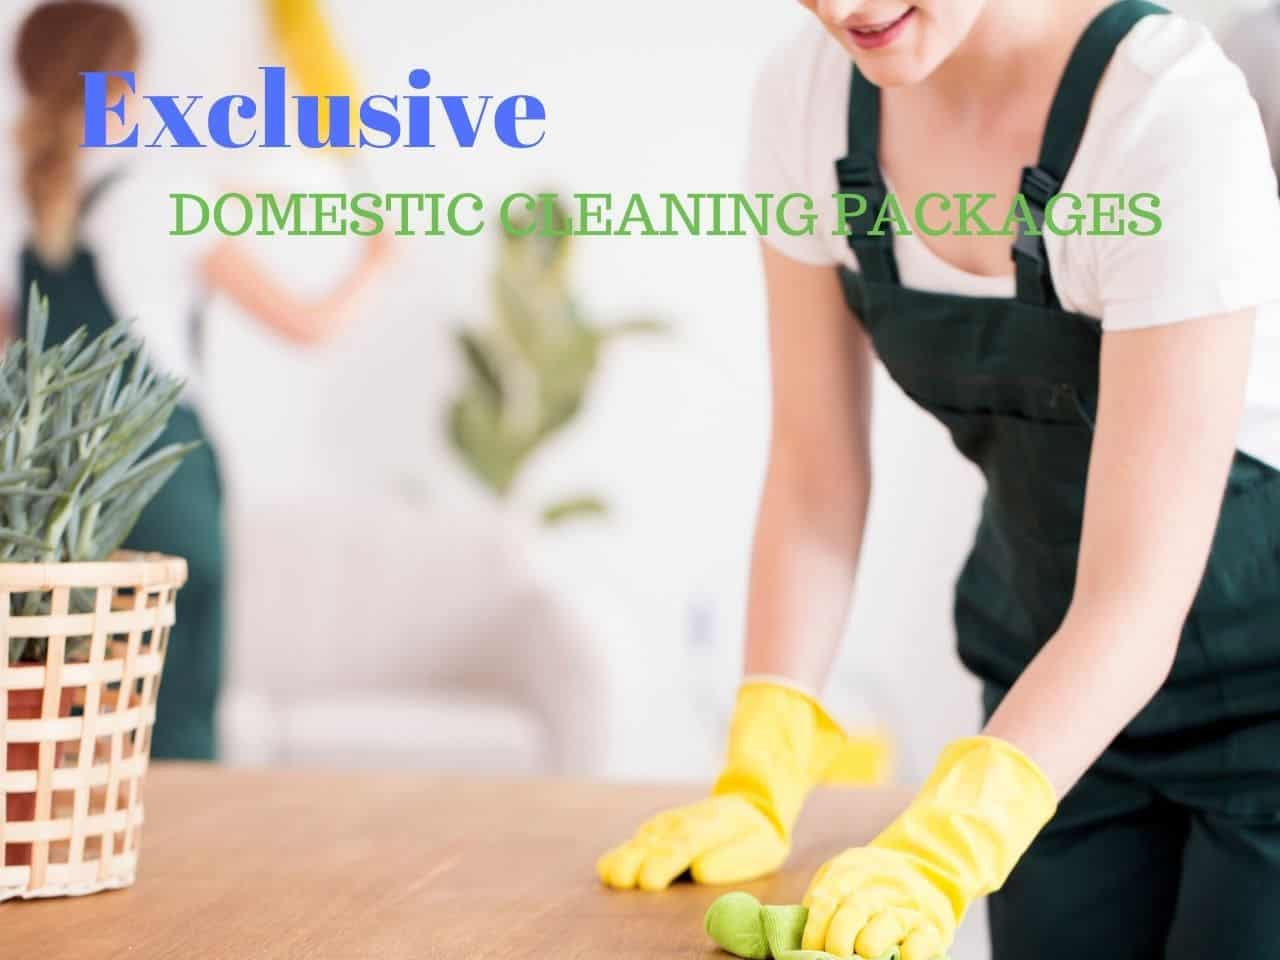 Exclusive Domestic Cleaning Packages in Hampshire